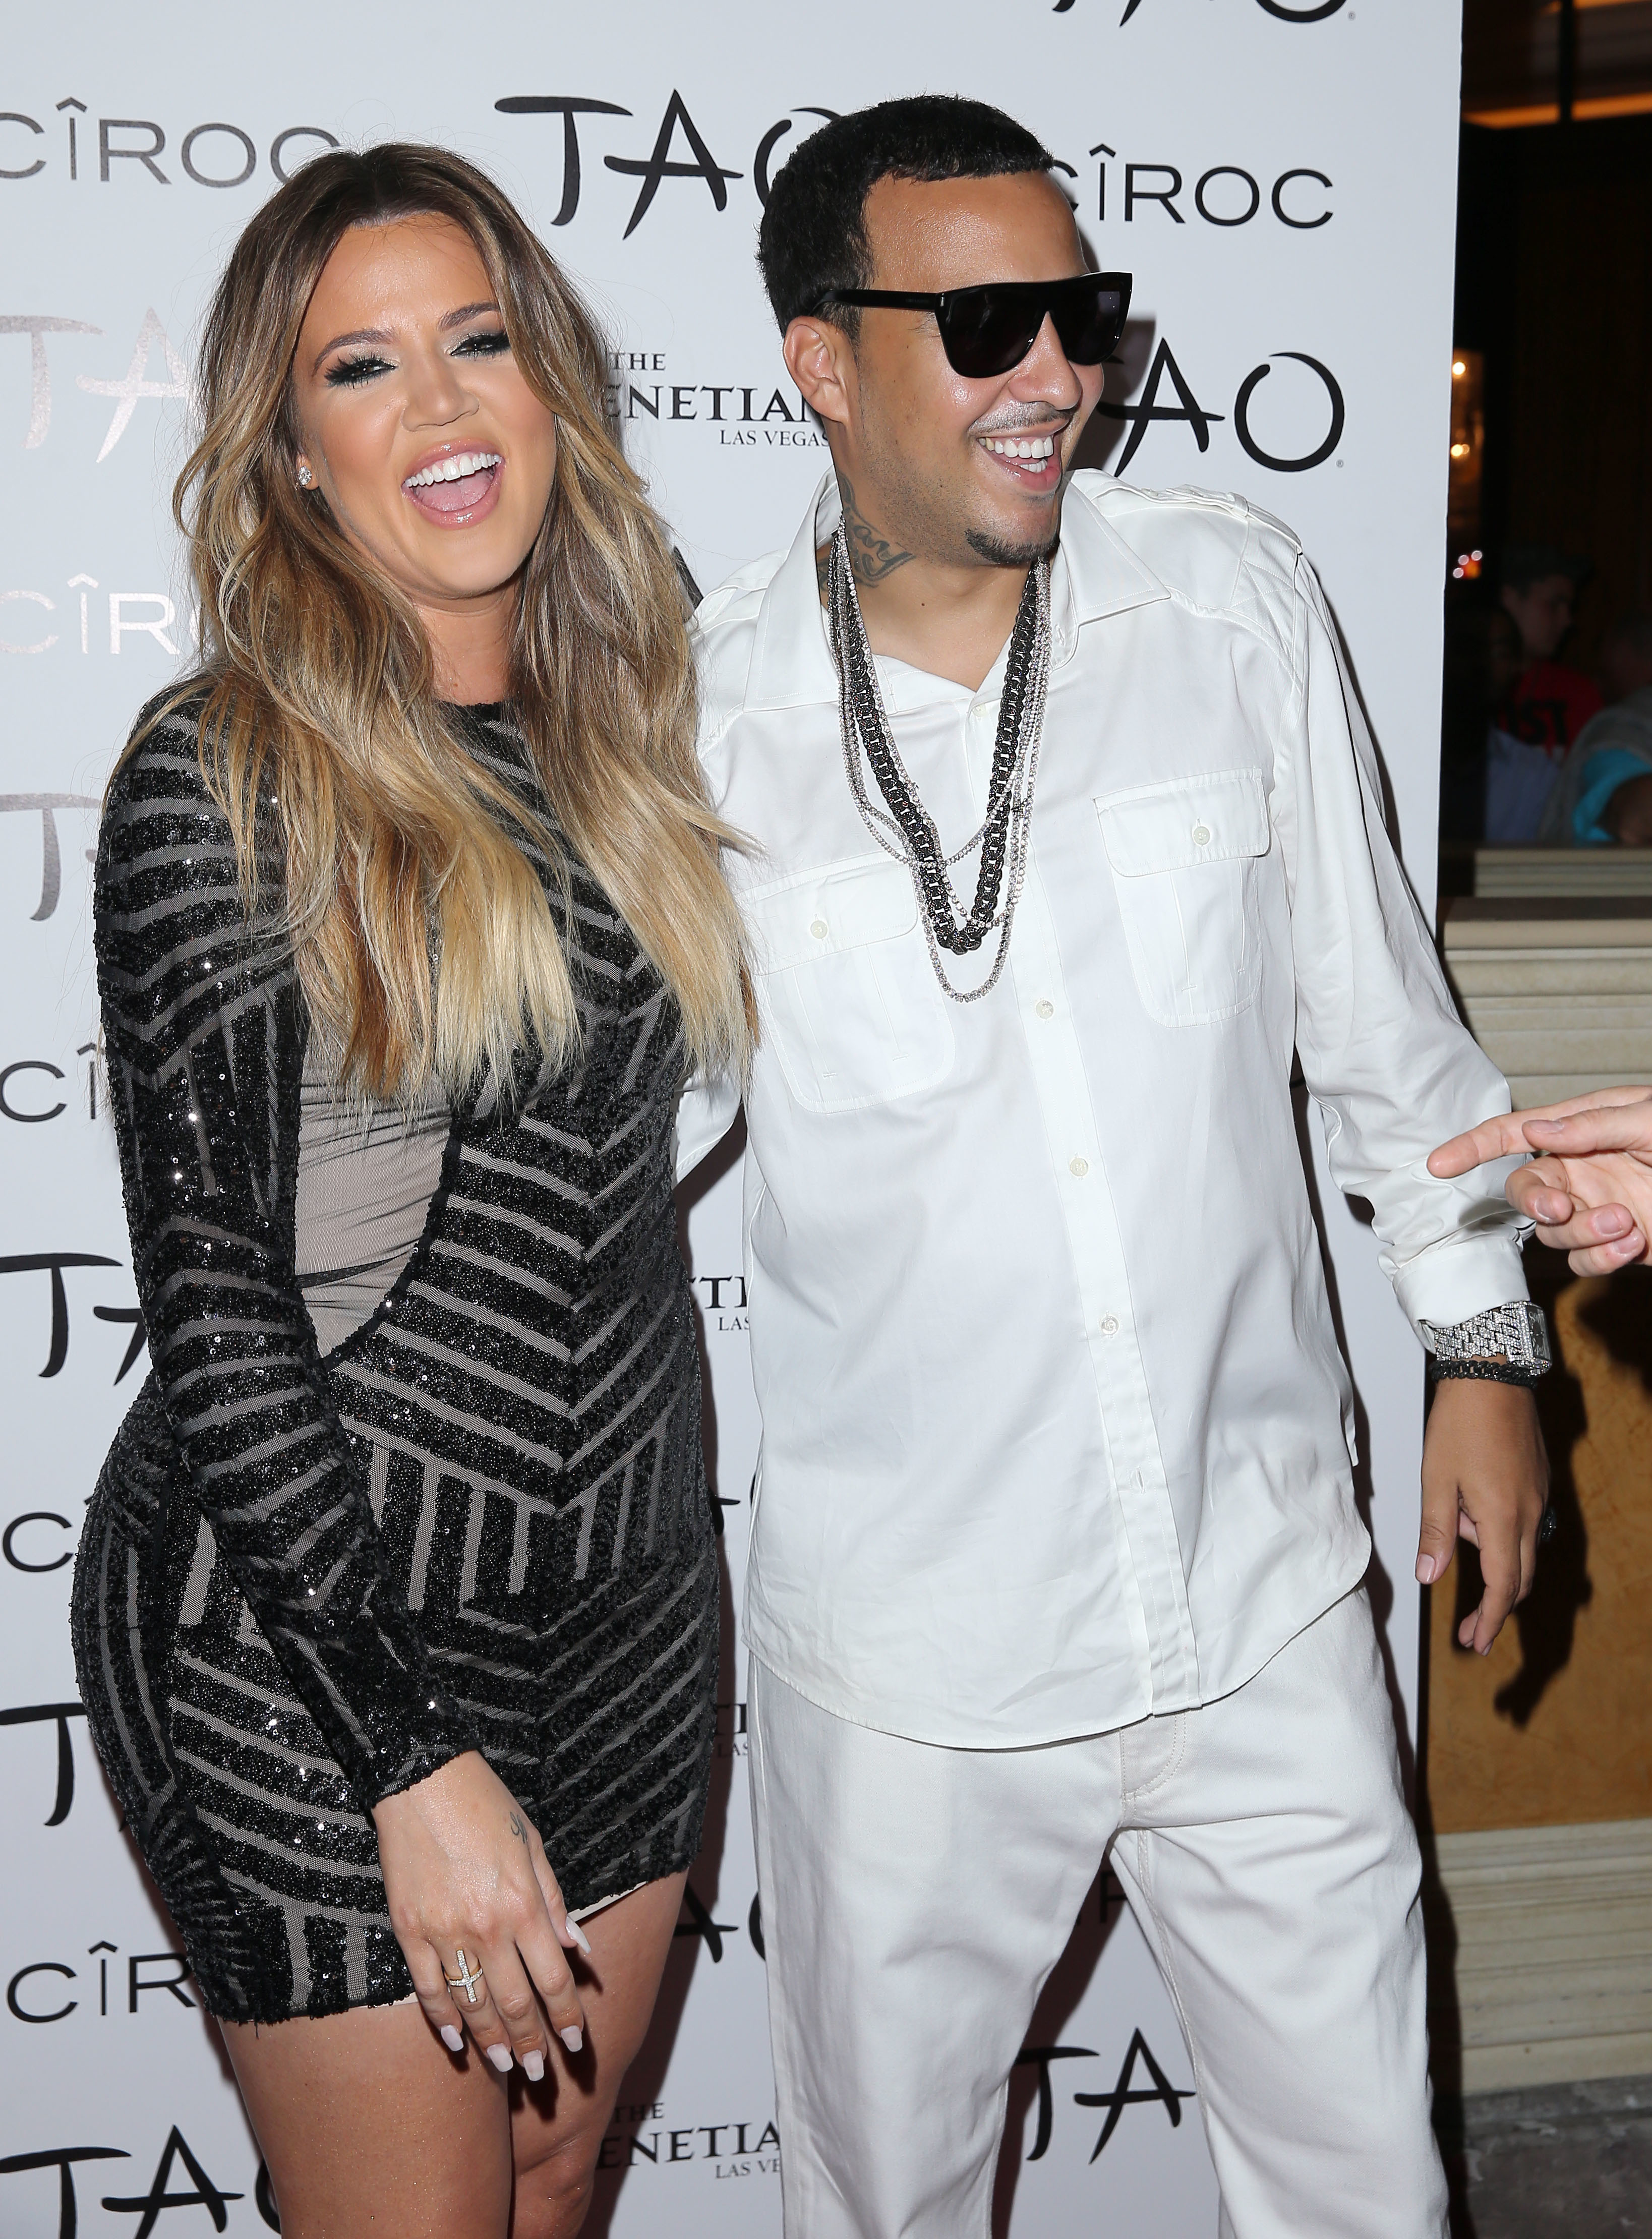 Is Khloe Kardashian hooking up with French Montana again?